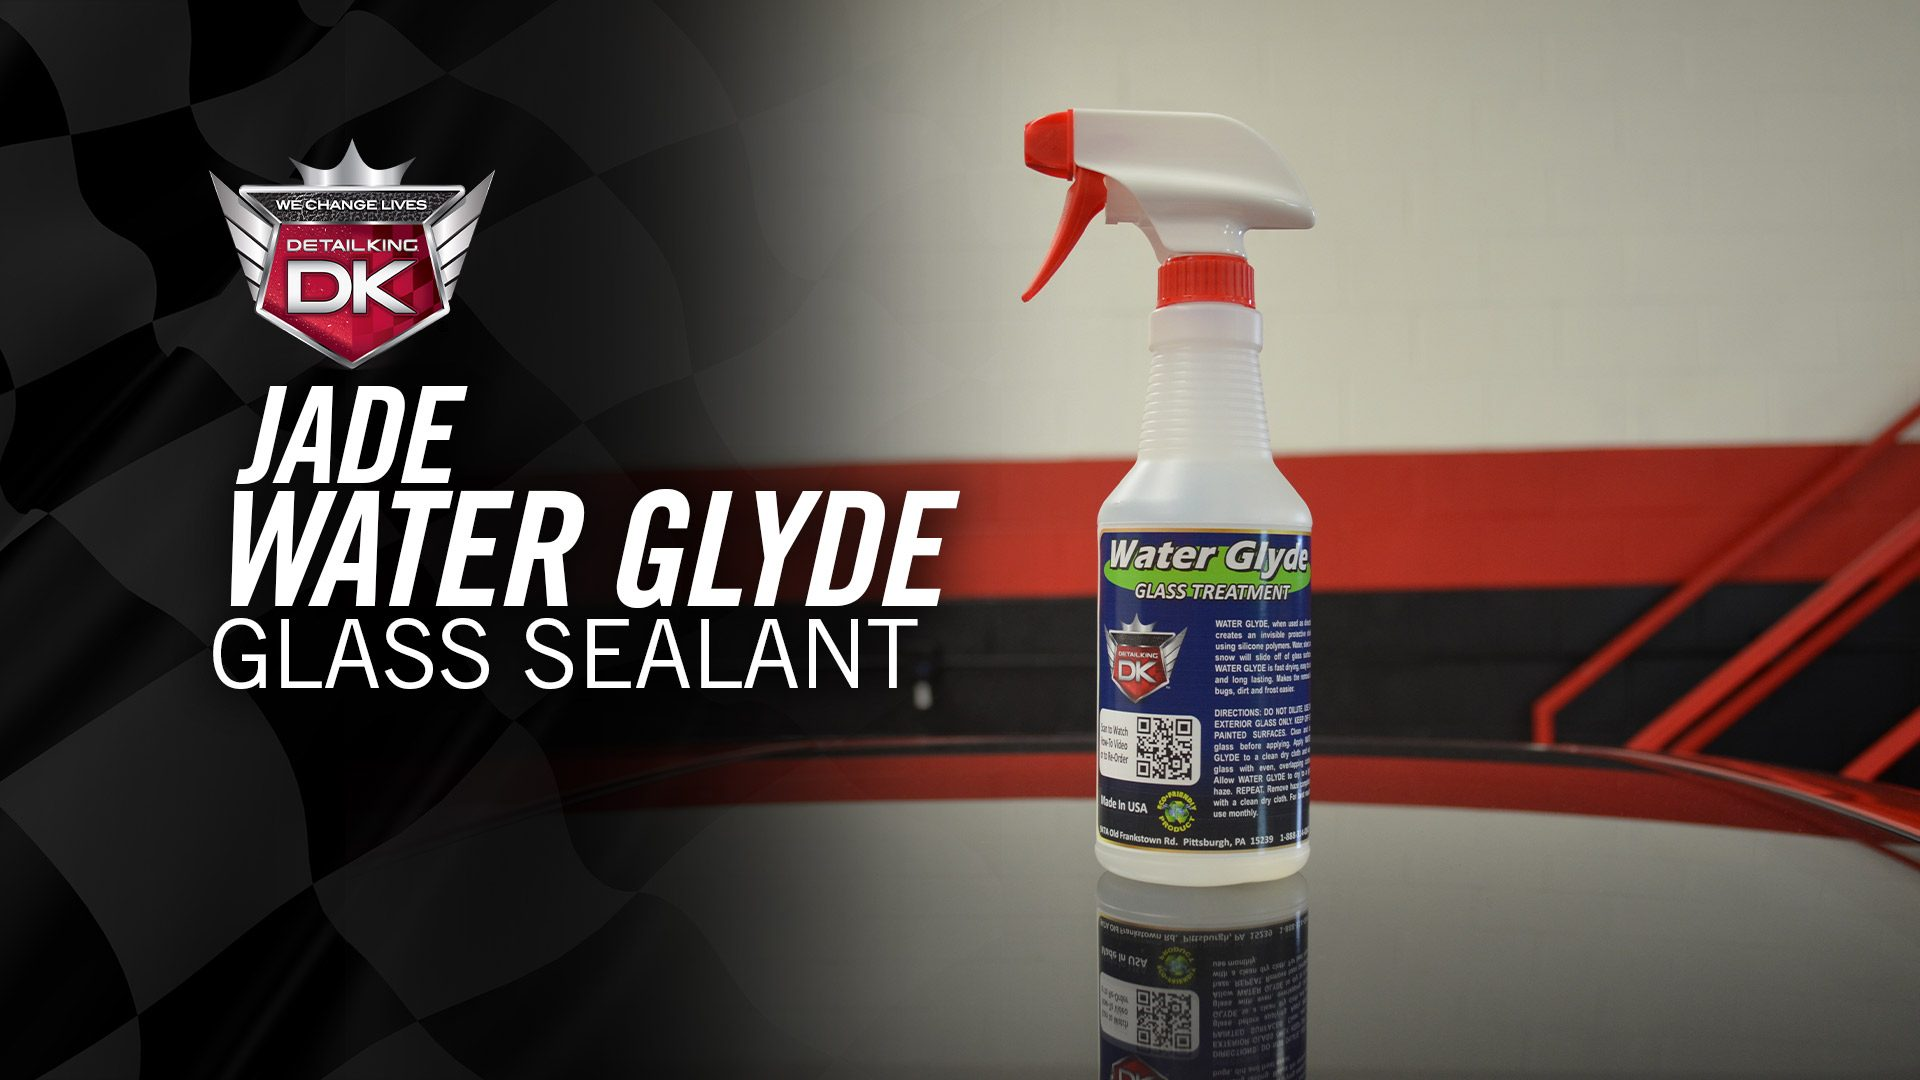 Jade Water Glyde Glass Sealant